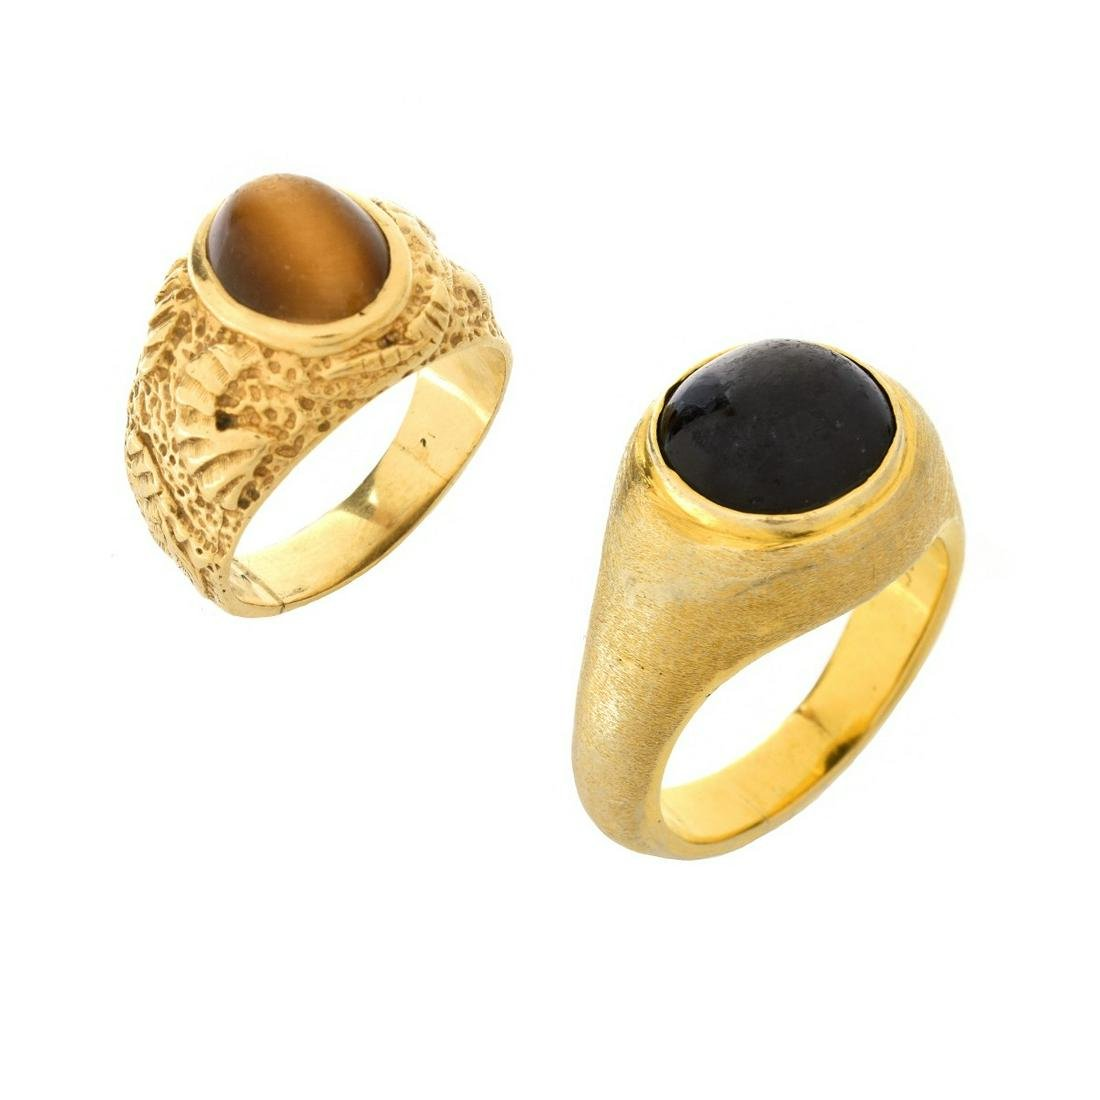 Two Men's 14K and Gemstone Rings